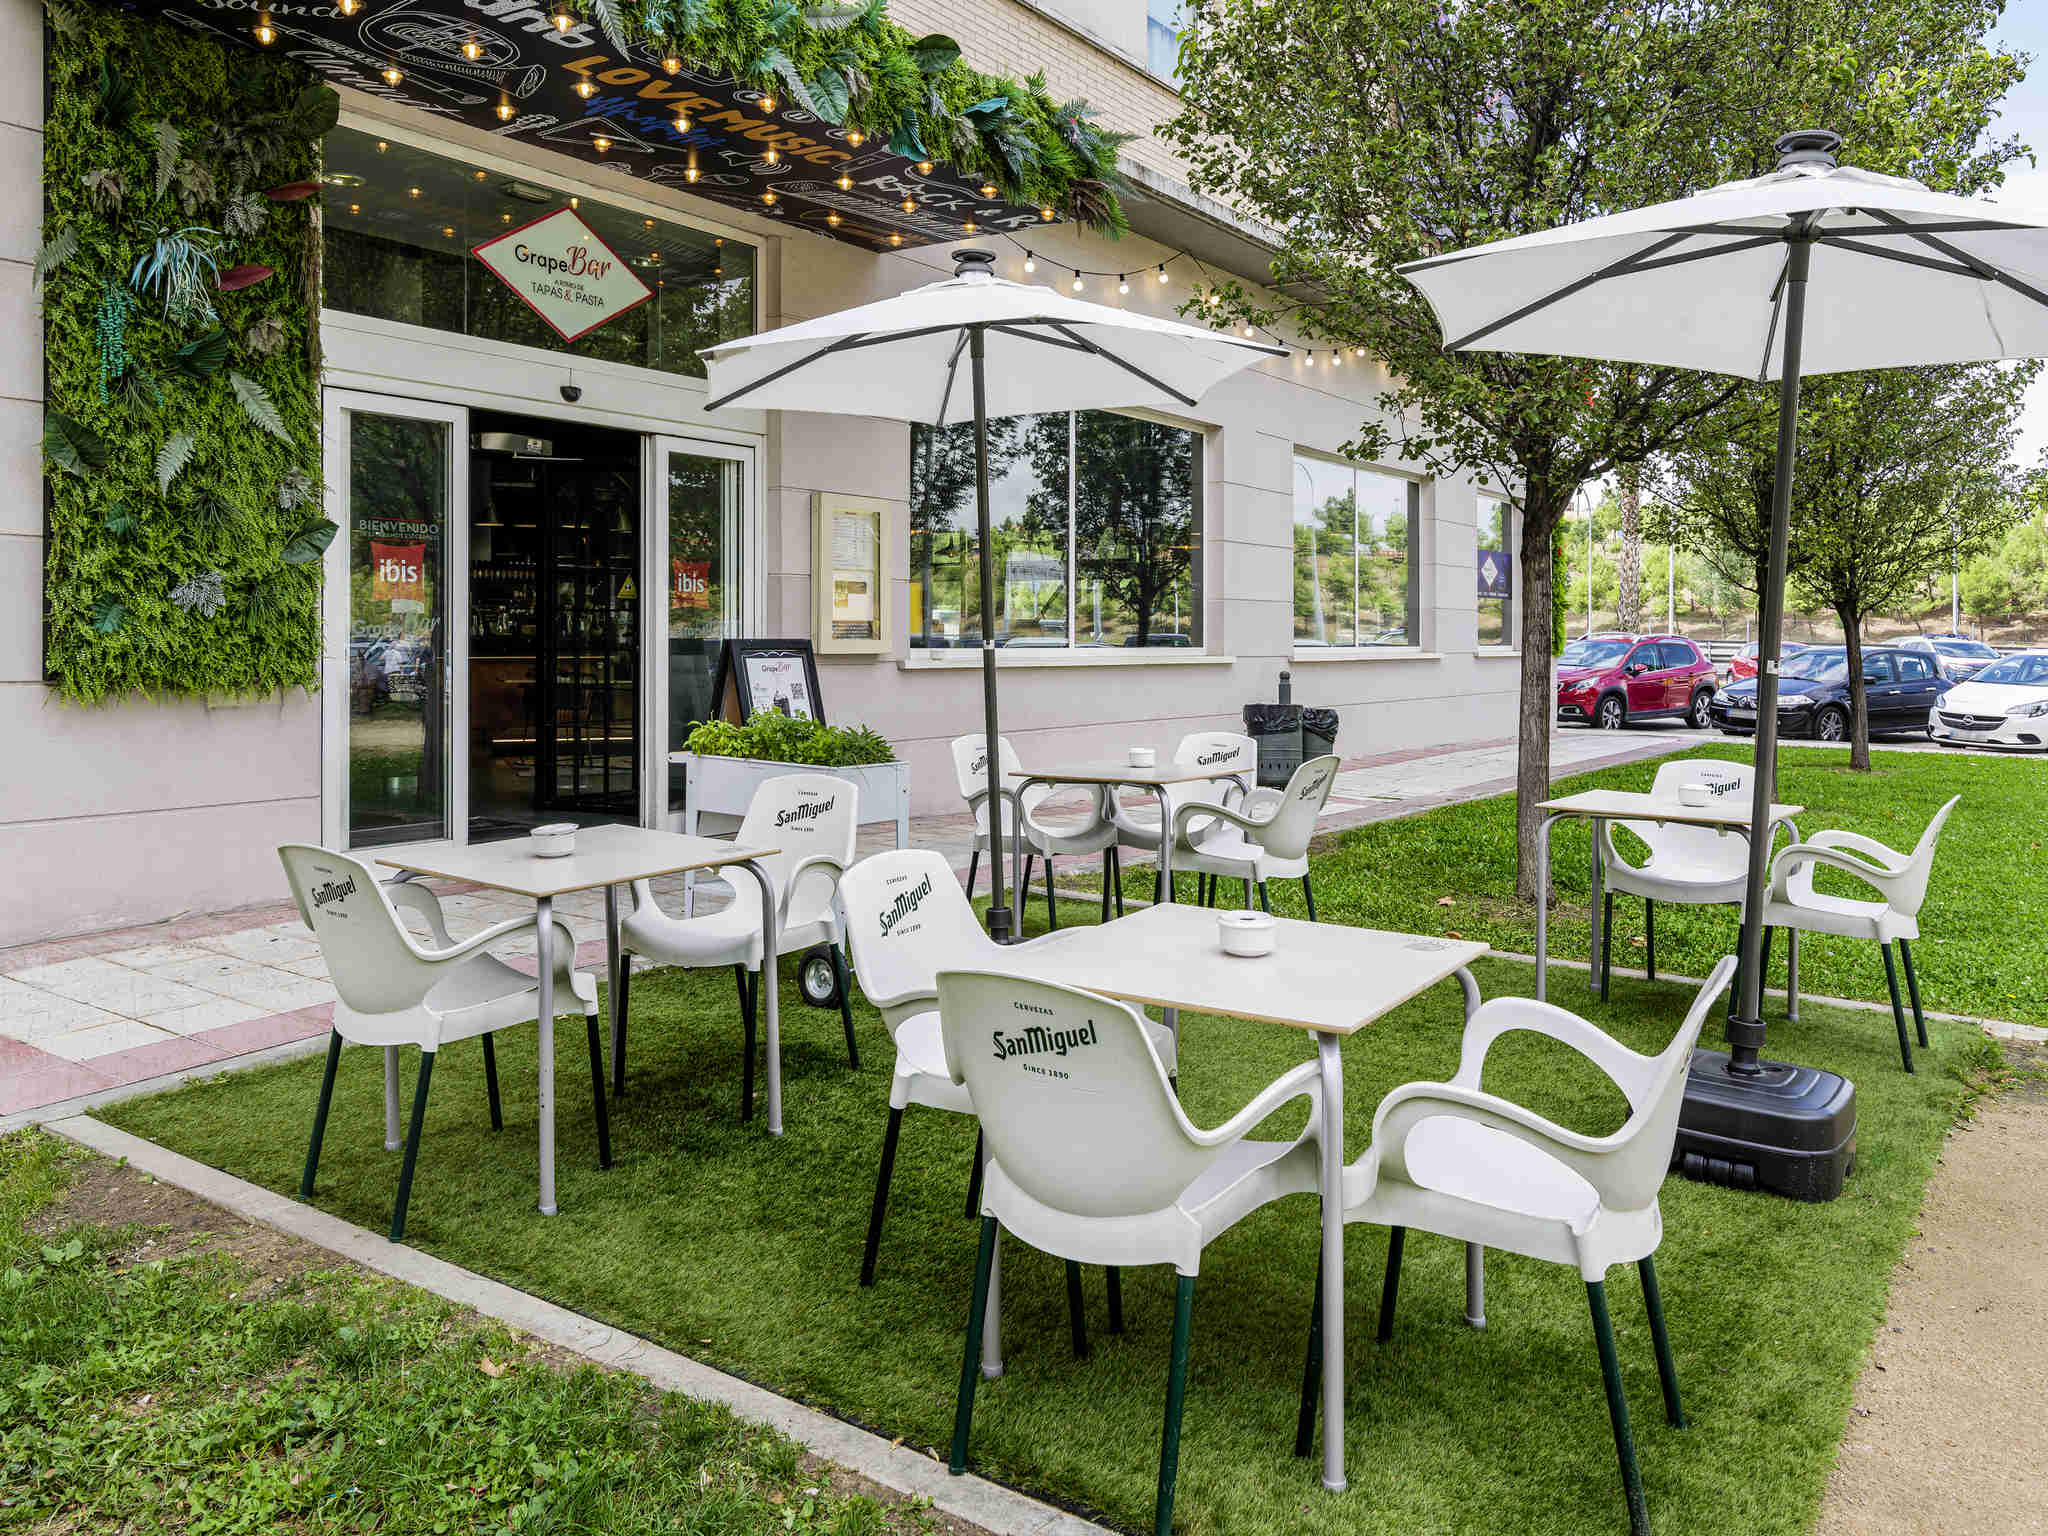 Economic hotel in madrid getafe book your ibis hotel - Hoteles cerca casa campo madrid ...